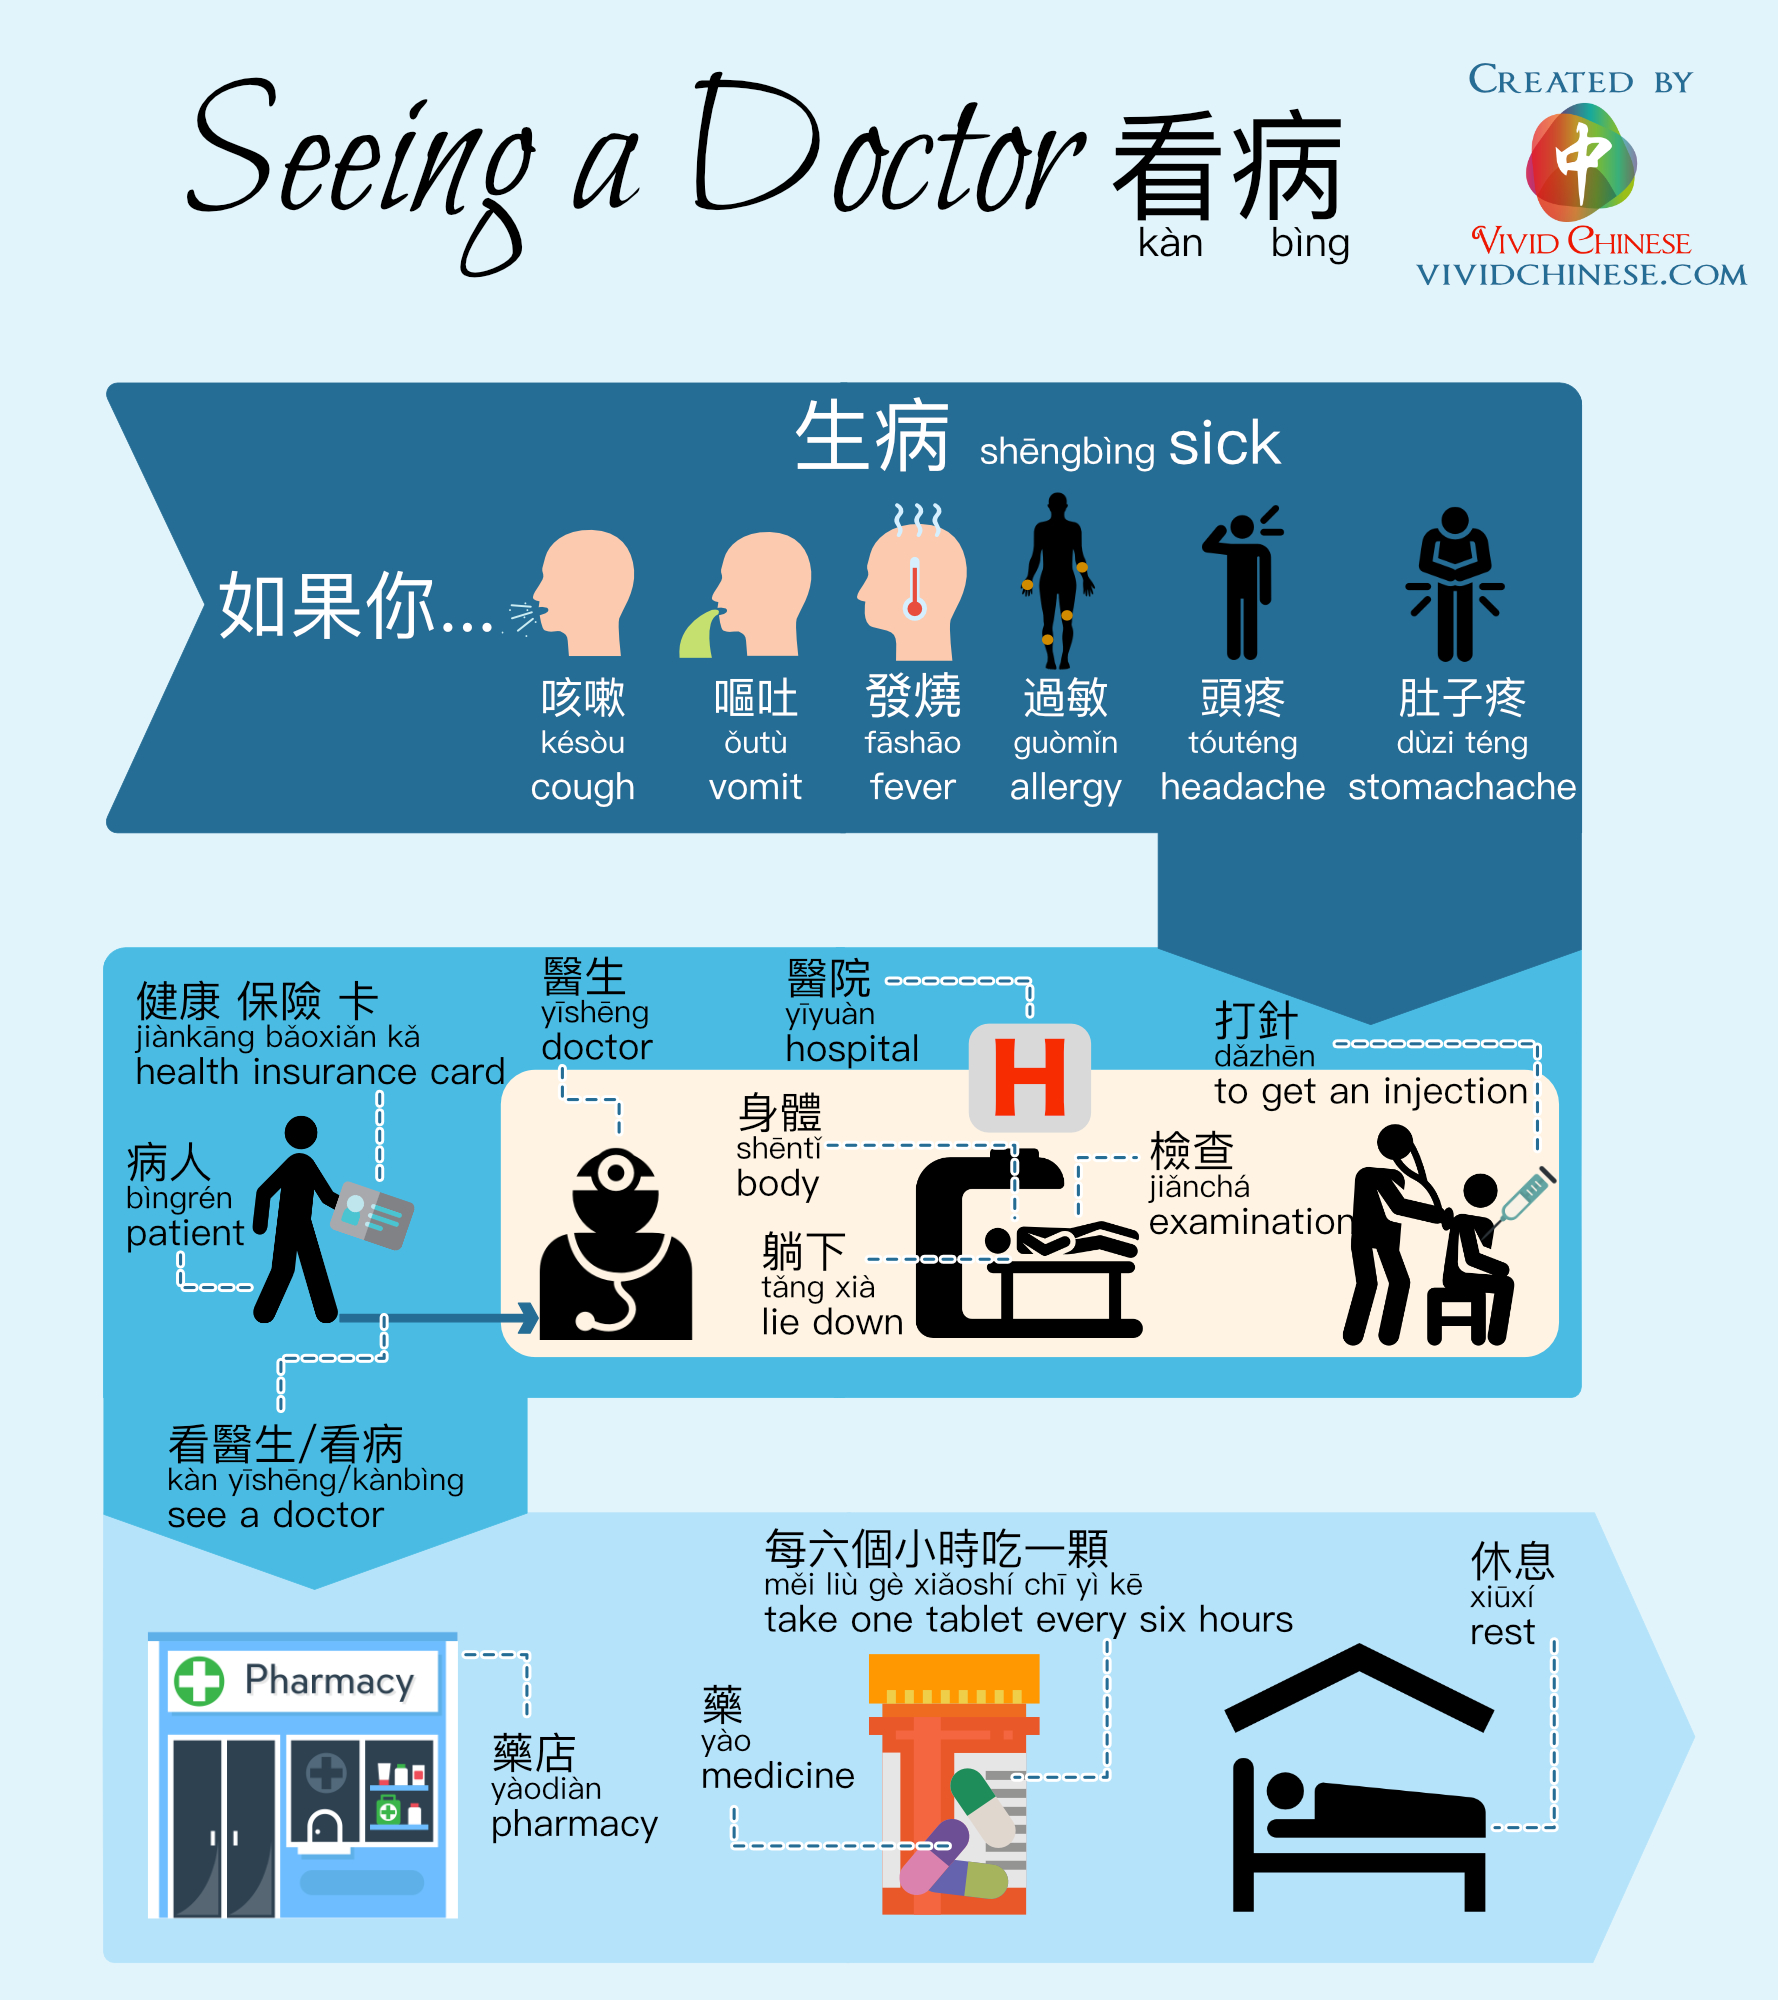 Seeing a doctor TraditionalChinese Version Infographic